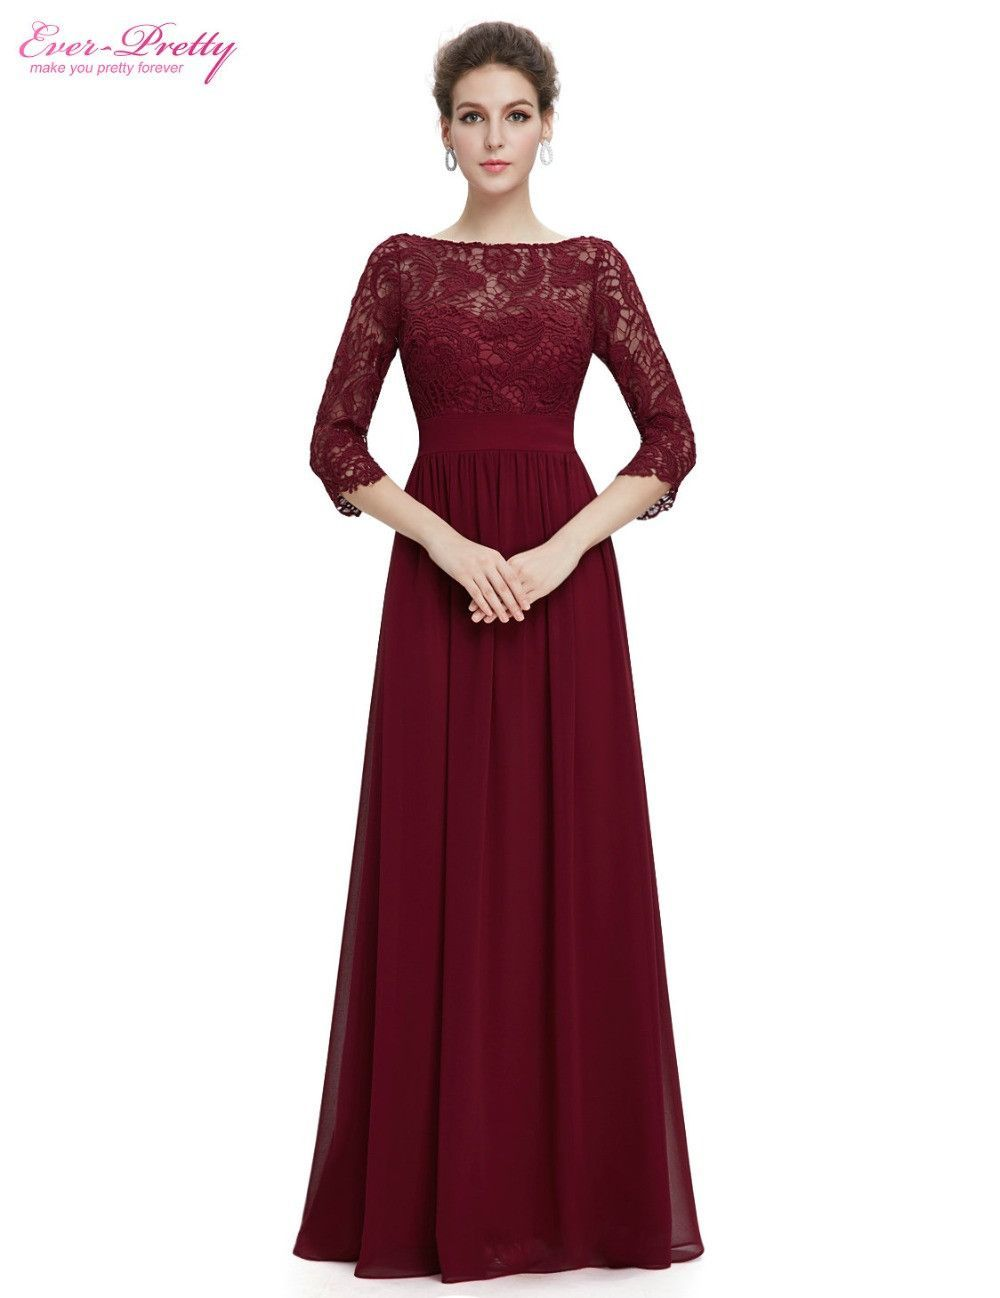 Occasion  Formal Evening Item Type  Evening Dresses Waistline  Empire  is customized  No Fabric Type  Satin Dresses Length  Floor-Length Neckline   O-Neck ... 2f5d3e1af946